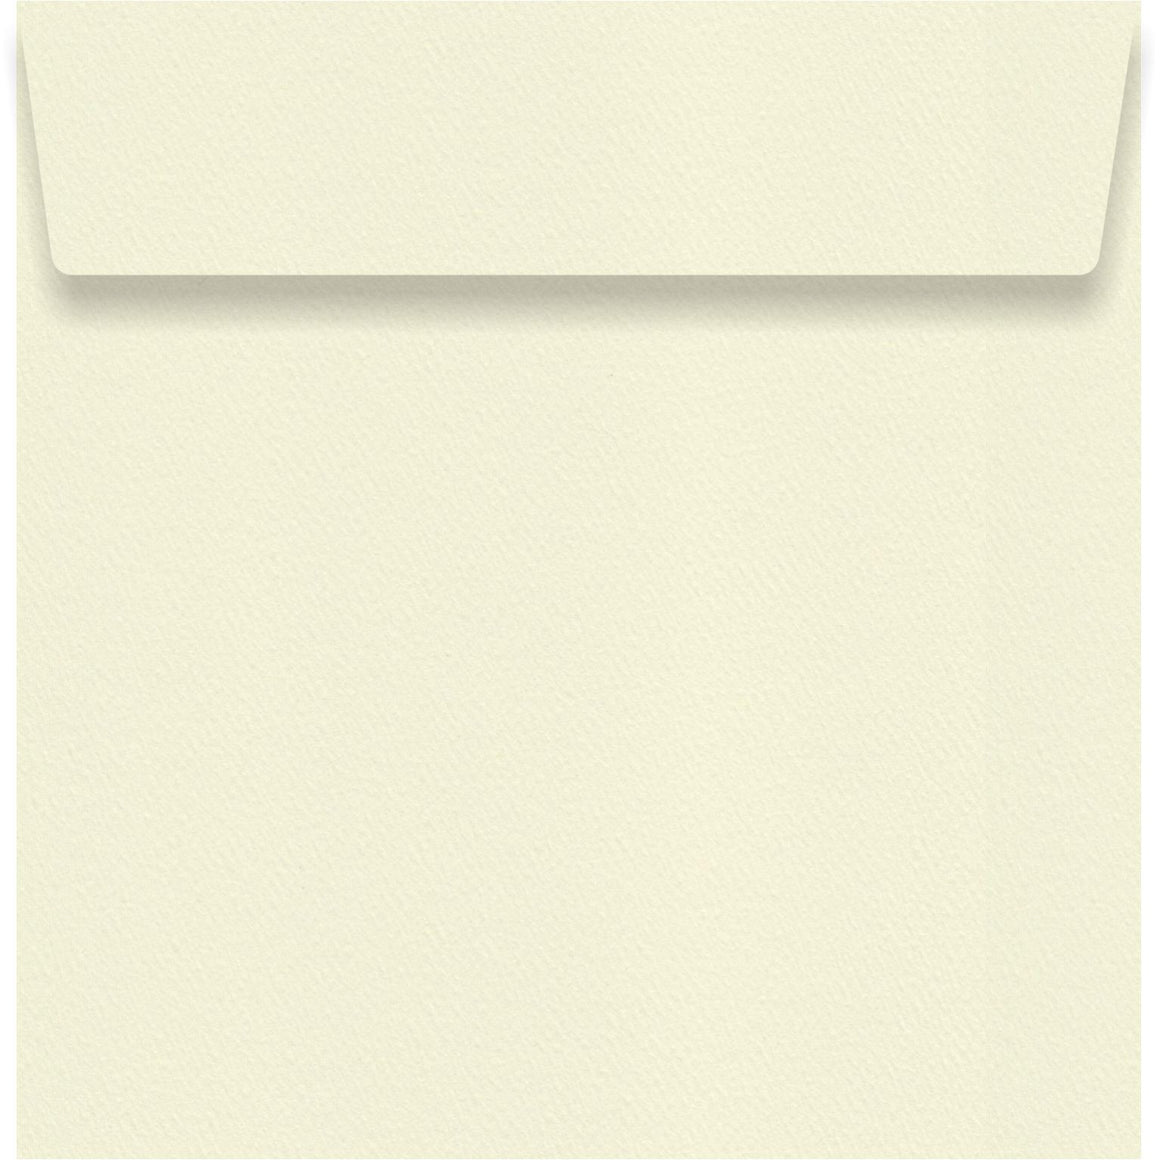 Via Felt Cream 130 x 130mm Envelope